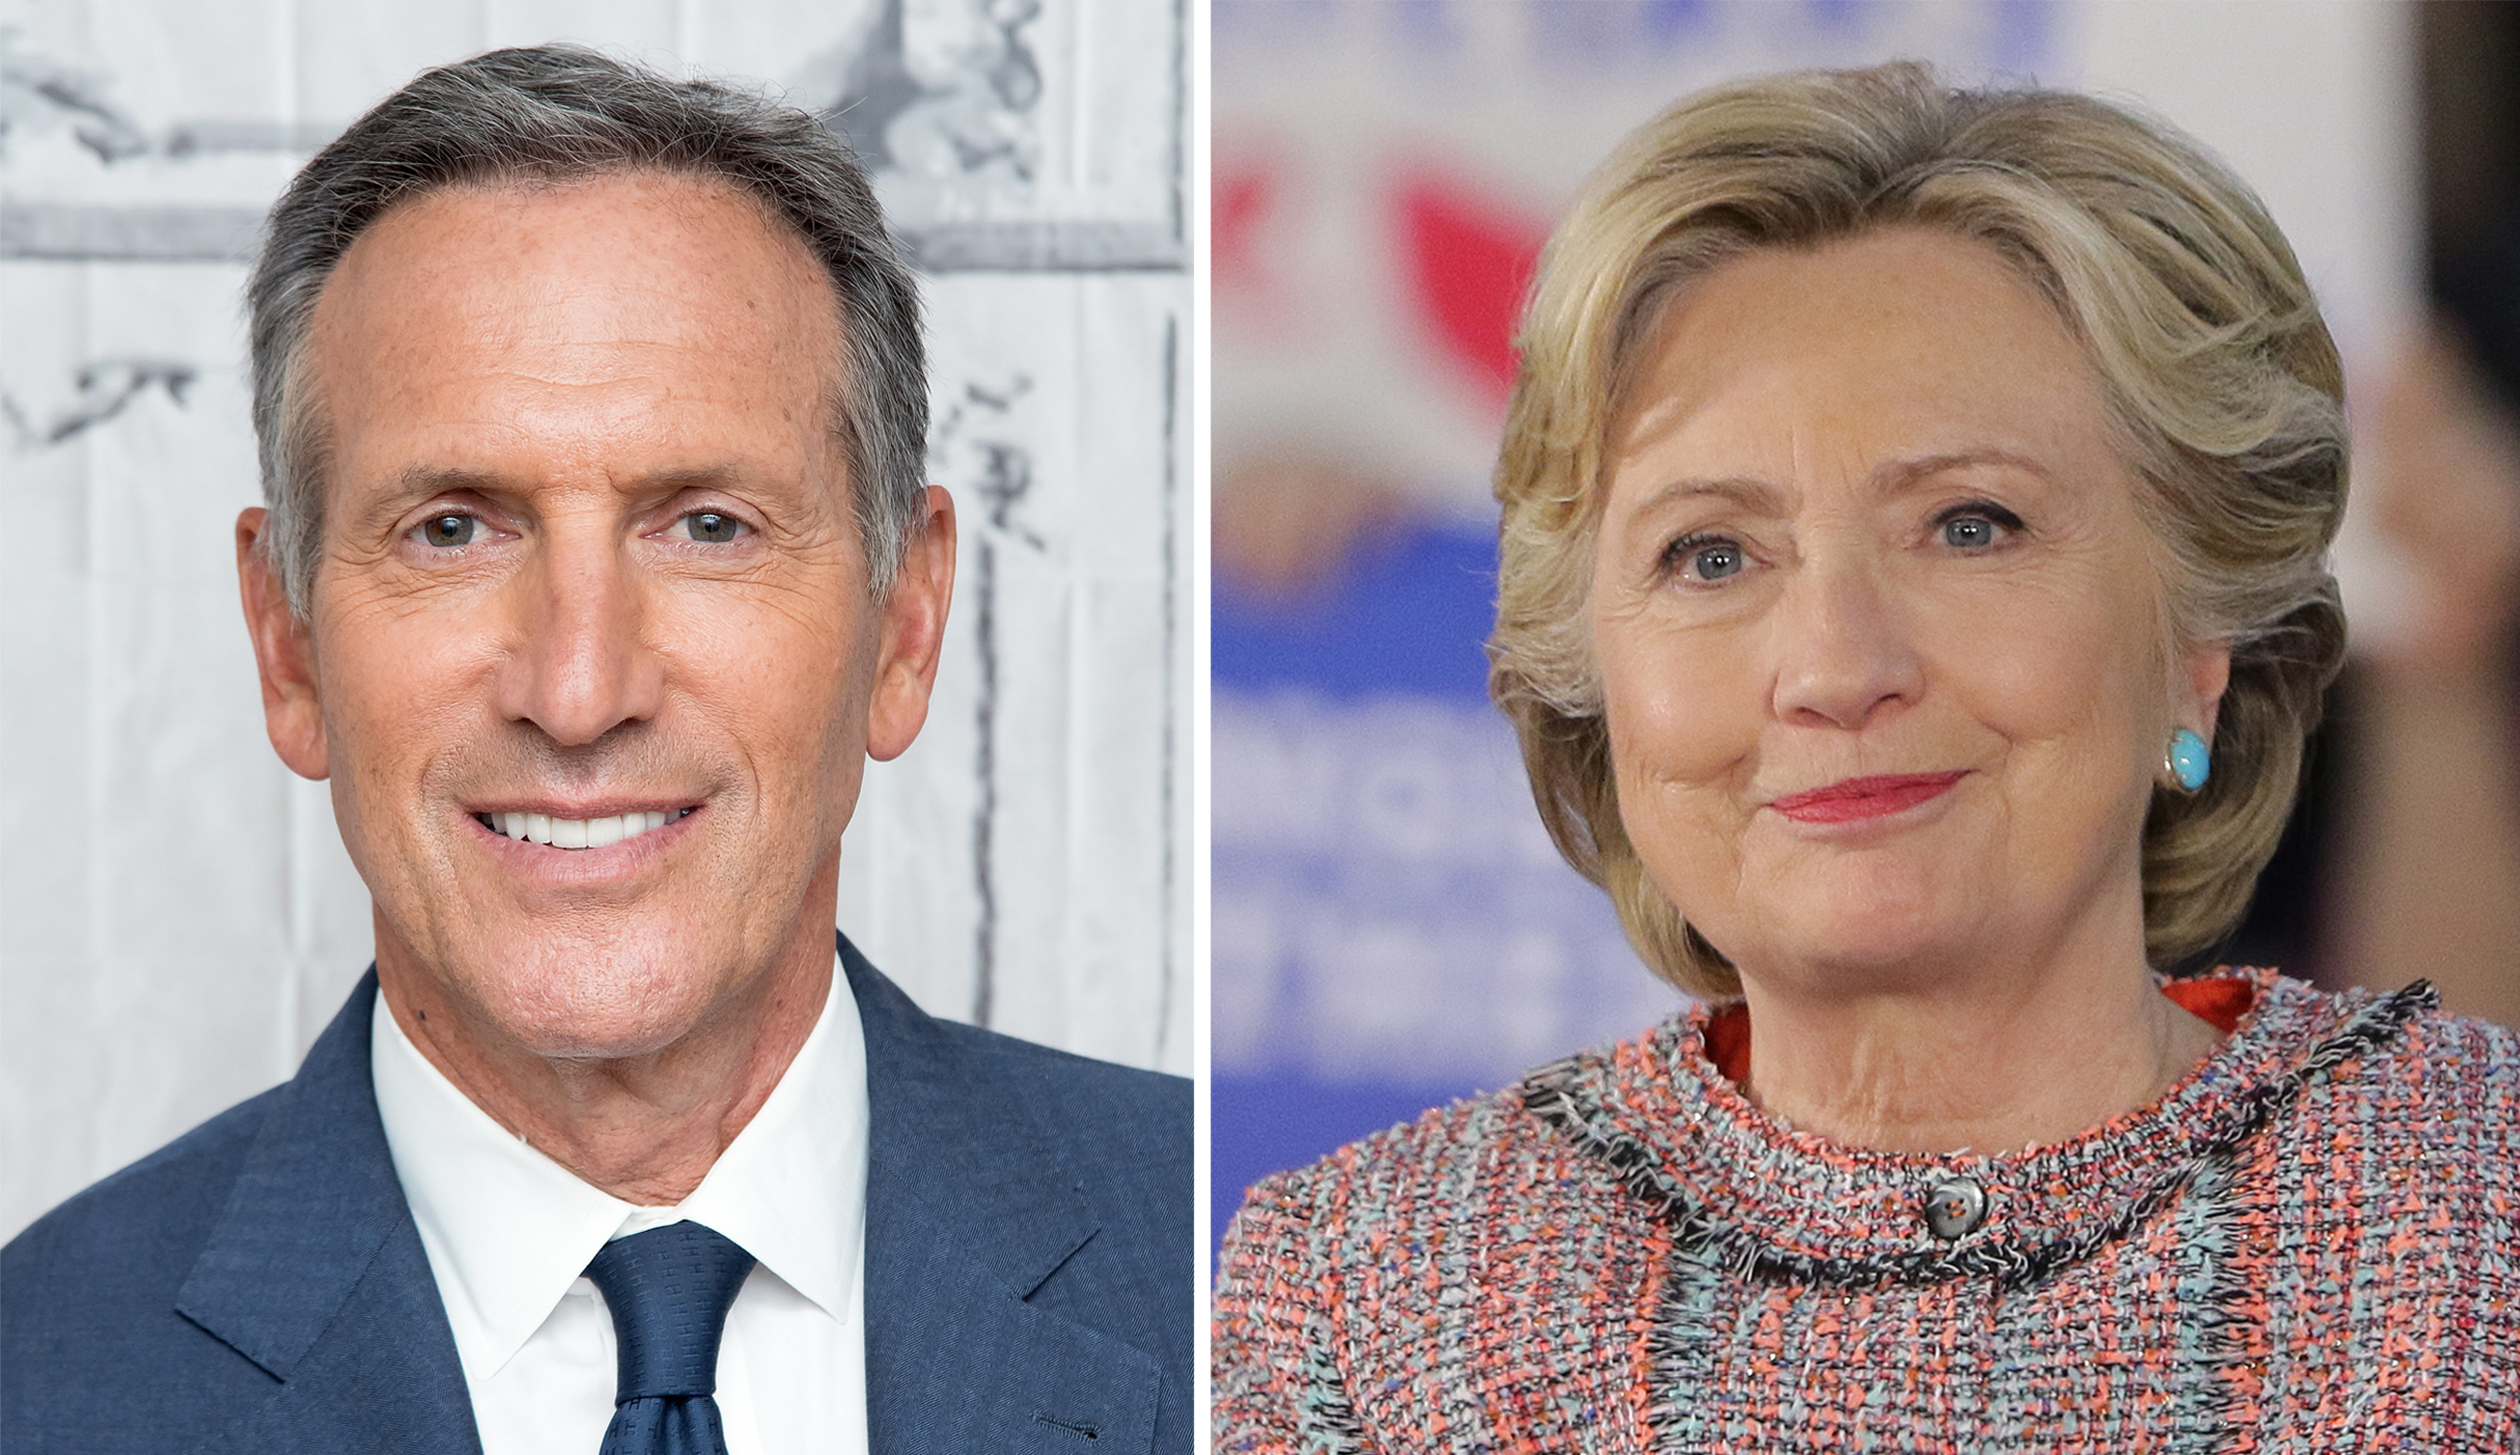 Starbucks CEO Howard Schultz and Democratic presidential nominee Hillary Clinton